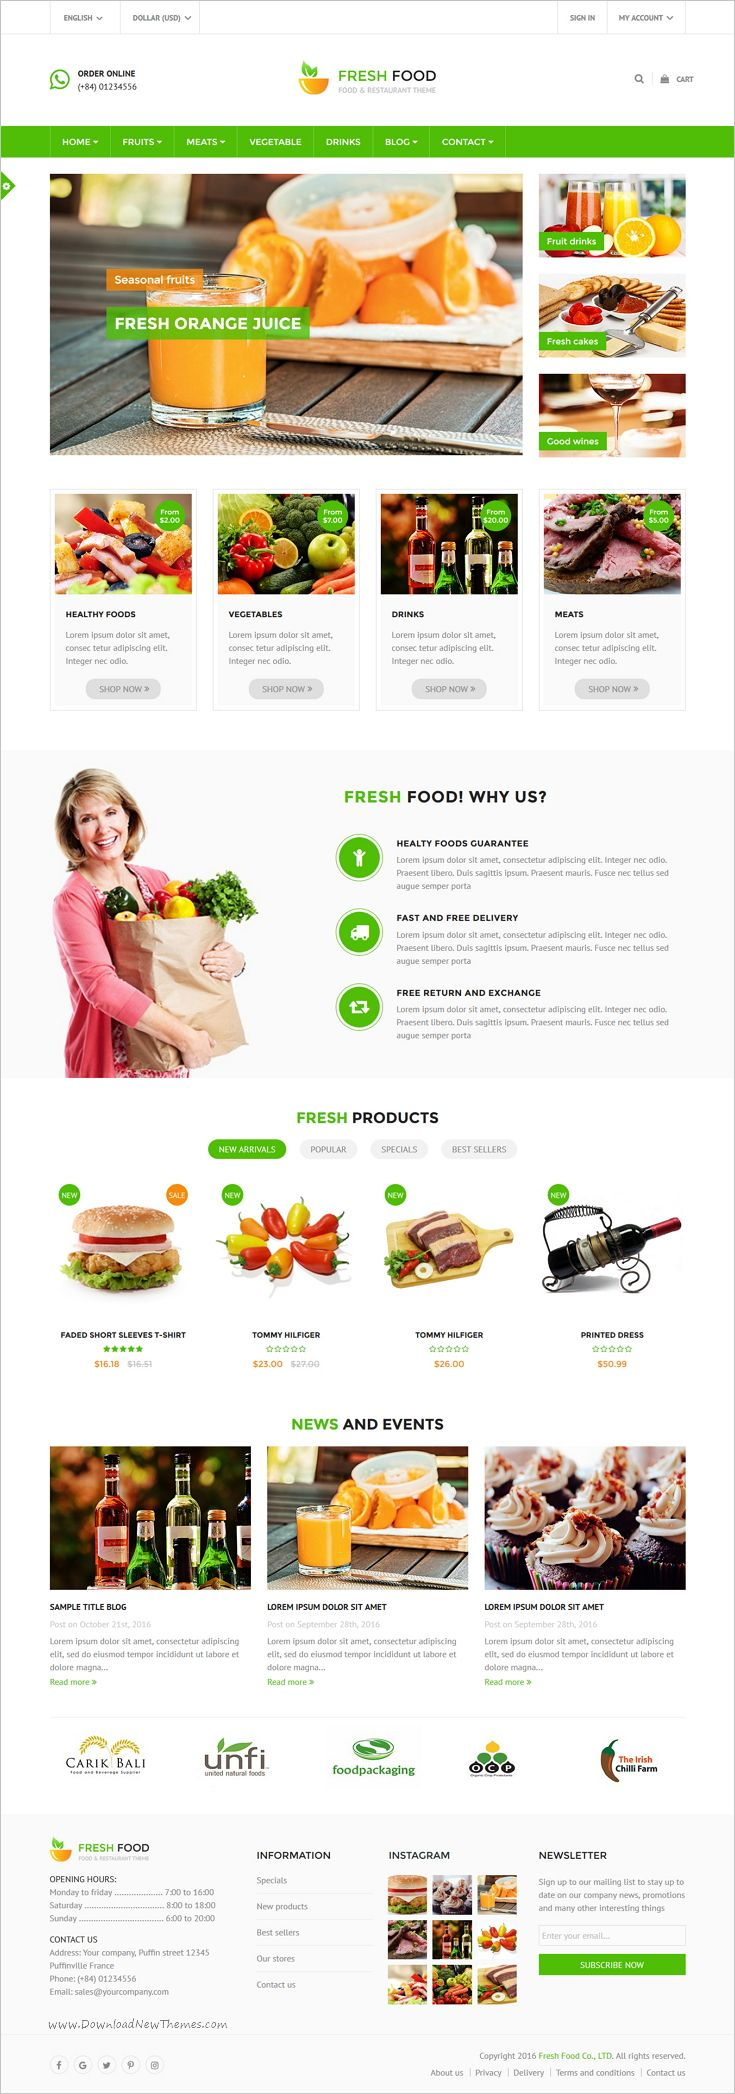 Fresh Food is a fully responsive #Prestashop theme for #Food and Restaurant #stores website with 6 unique homepage layouts download now➩ https://themeforest.net/item/fresh-food-specific-prestashop-theme-for-food-restaurant-stores/18623087?ref=Datasata